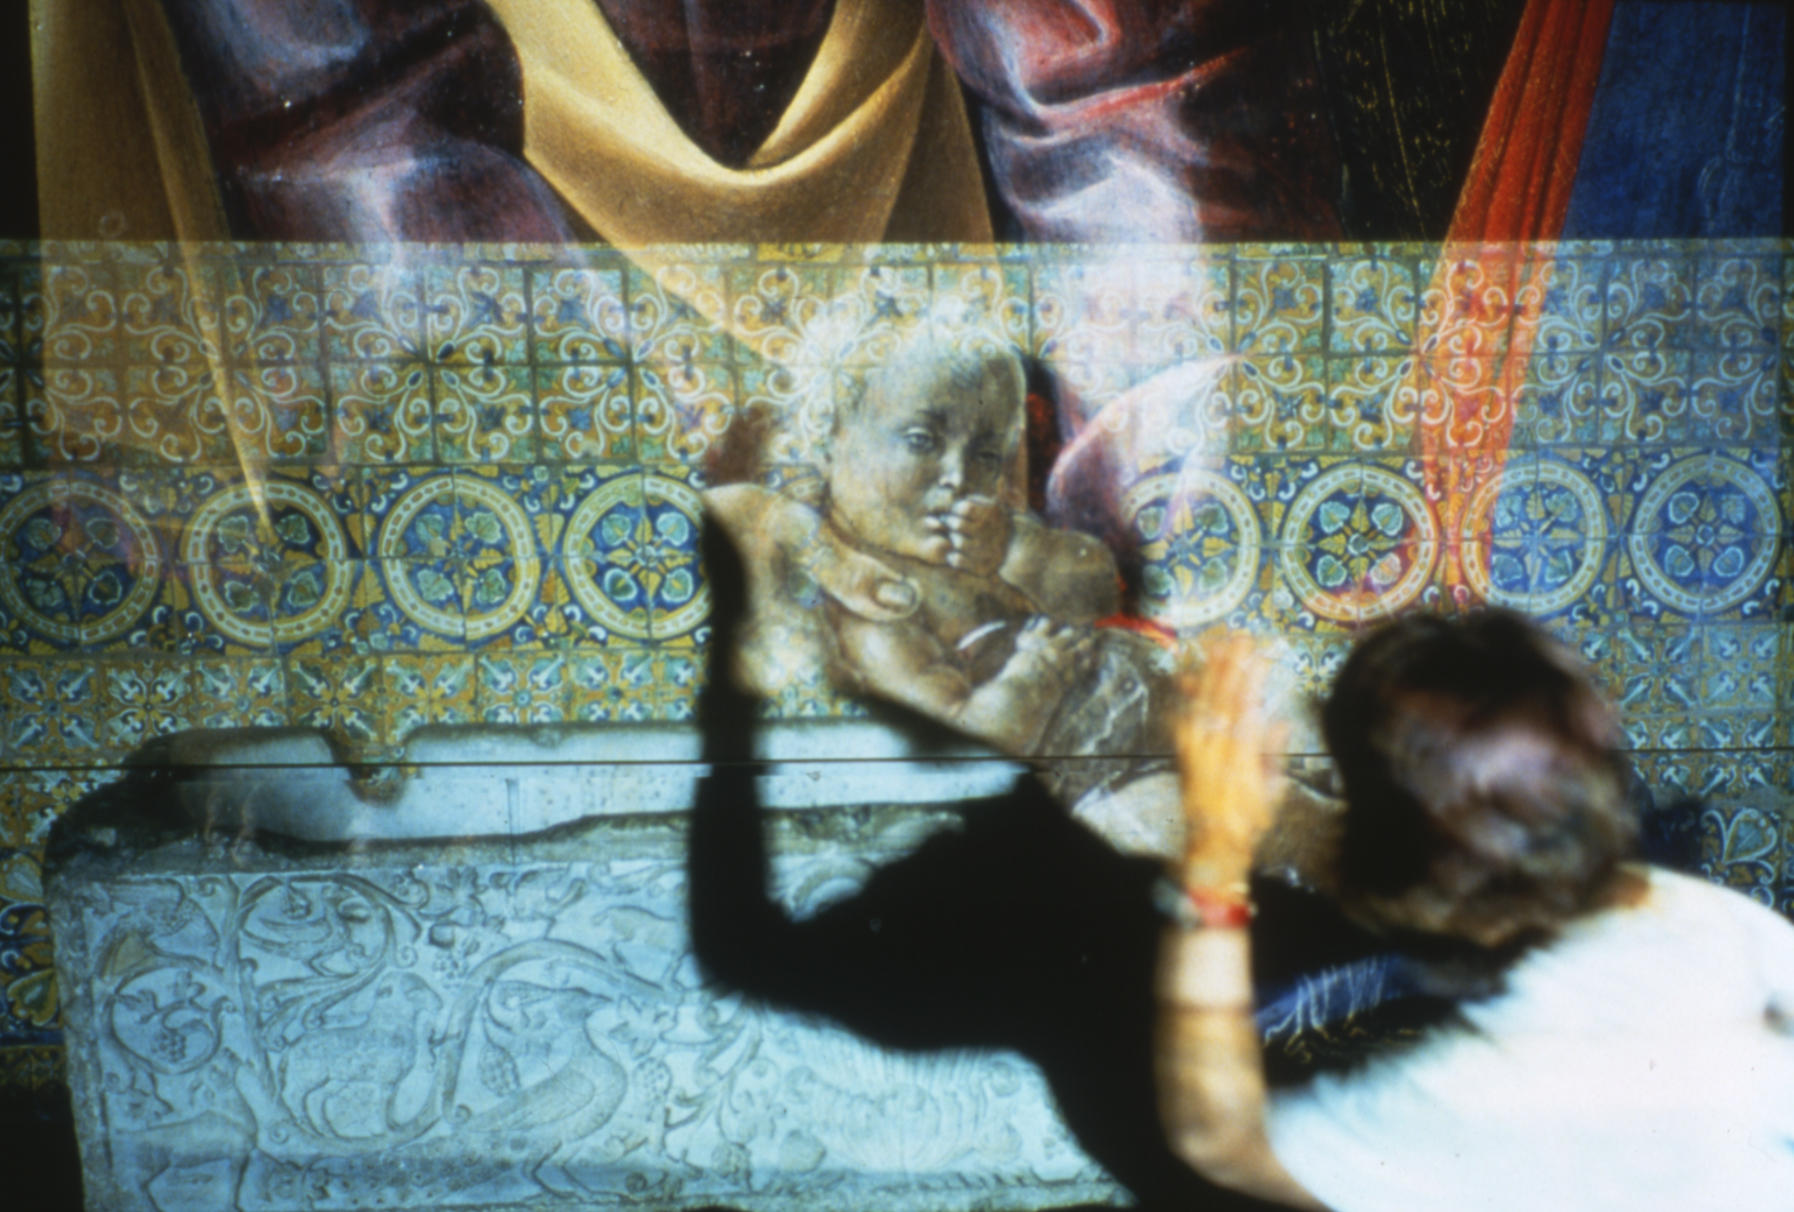 Dorit Cypis working with projections and shadows in the Spanish Cloister, 1993.